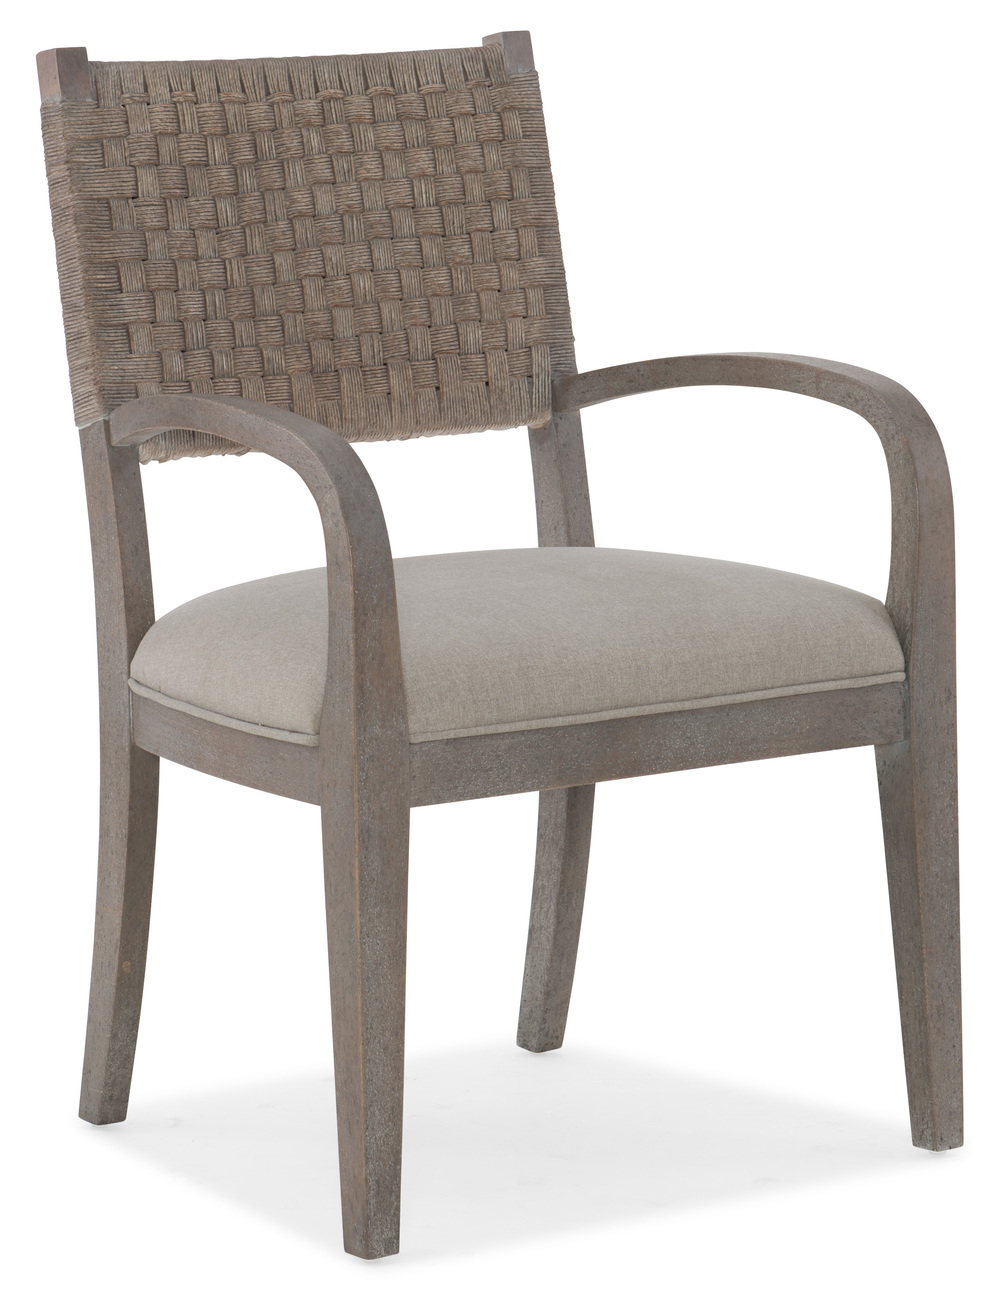 HOOKER FURNITURE CO - Artemis Woven Arm Chair